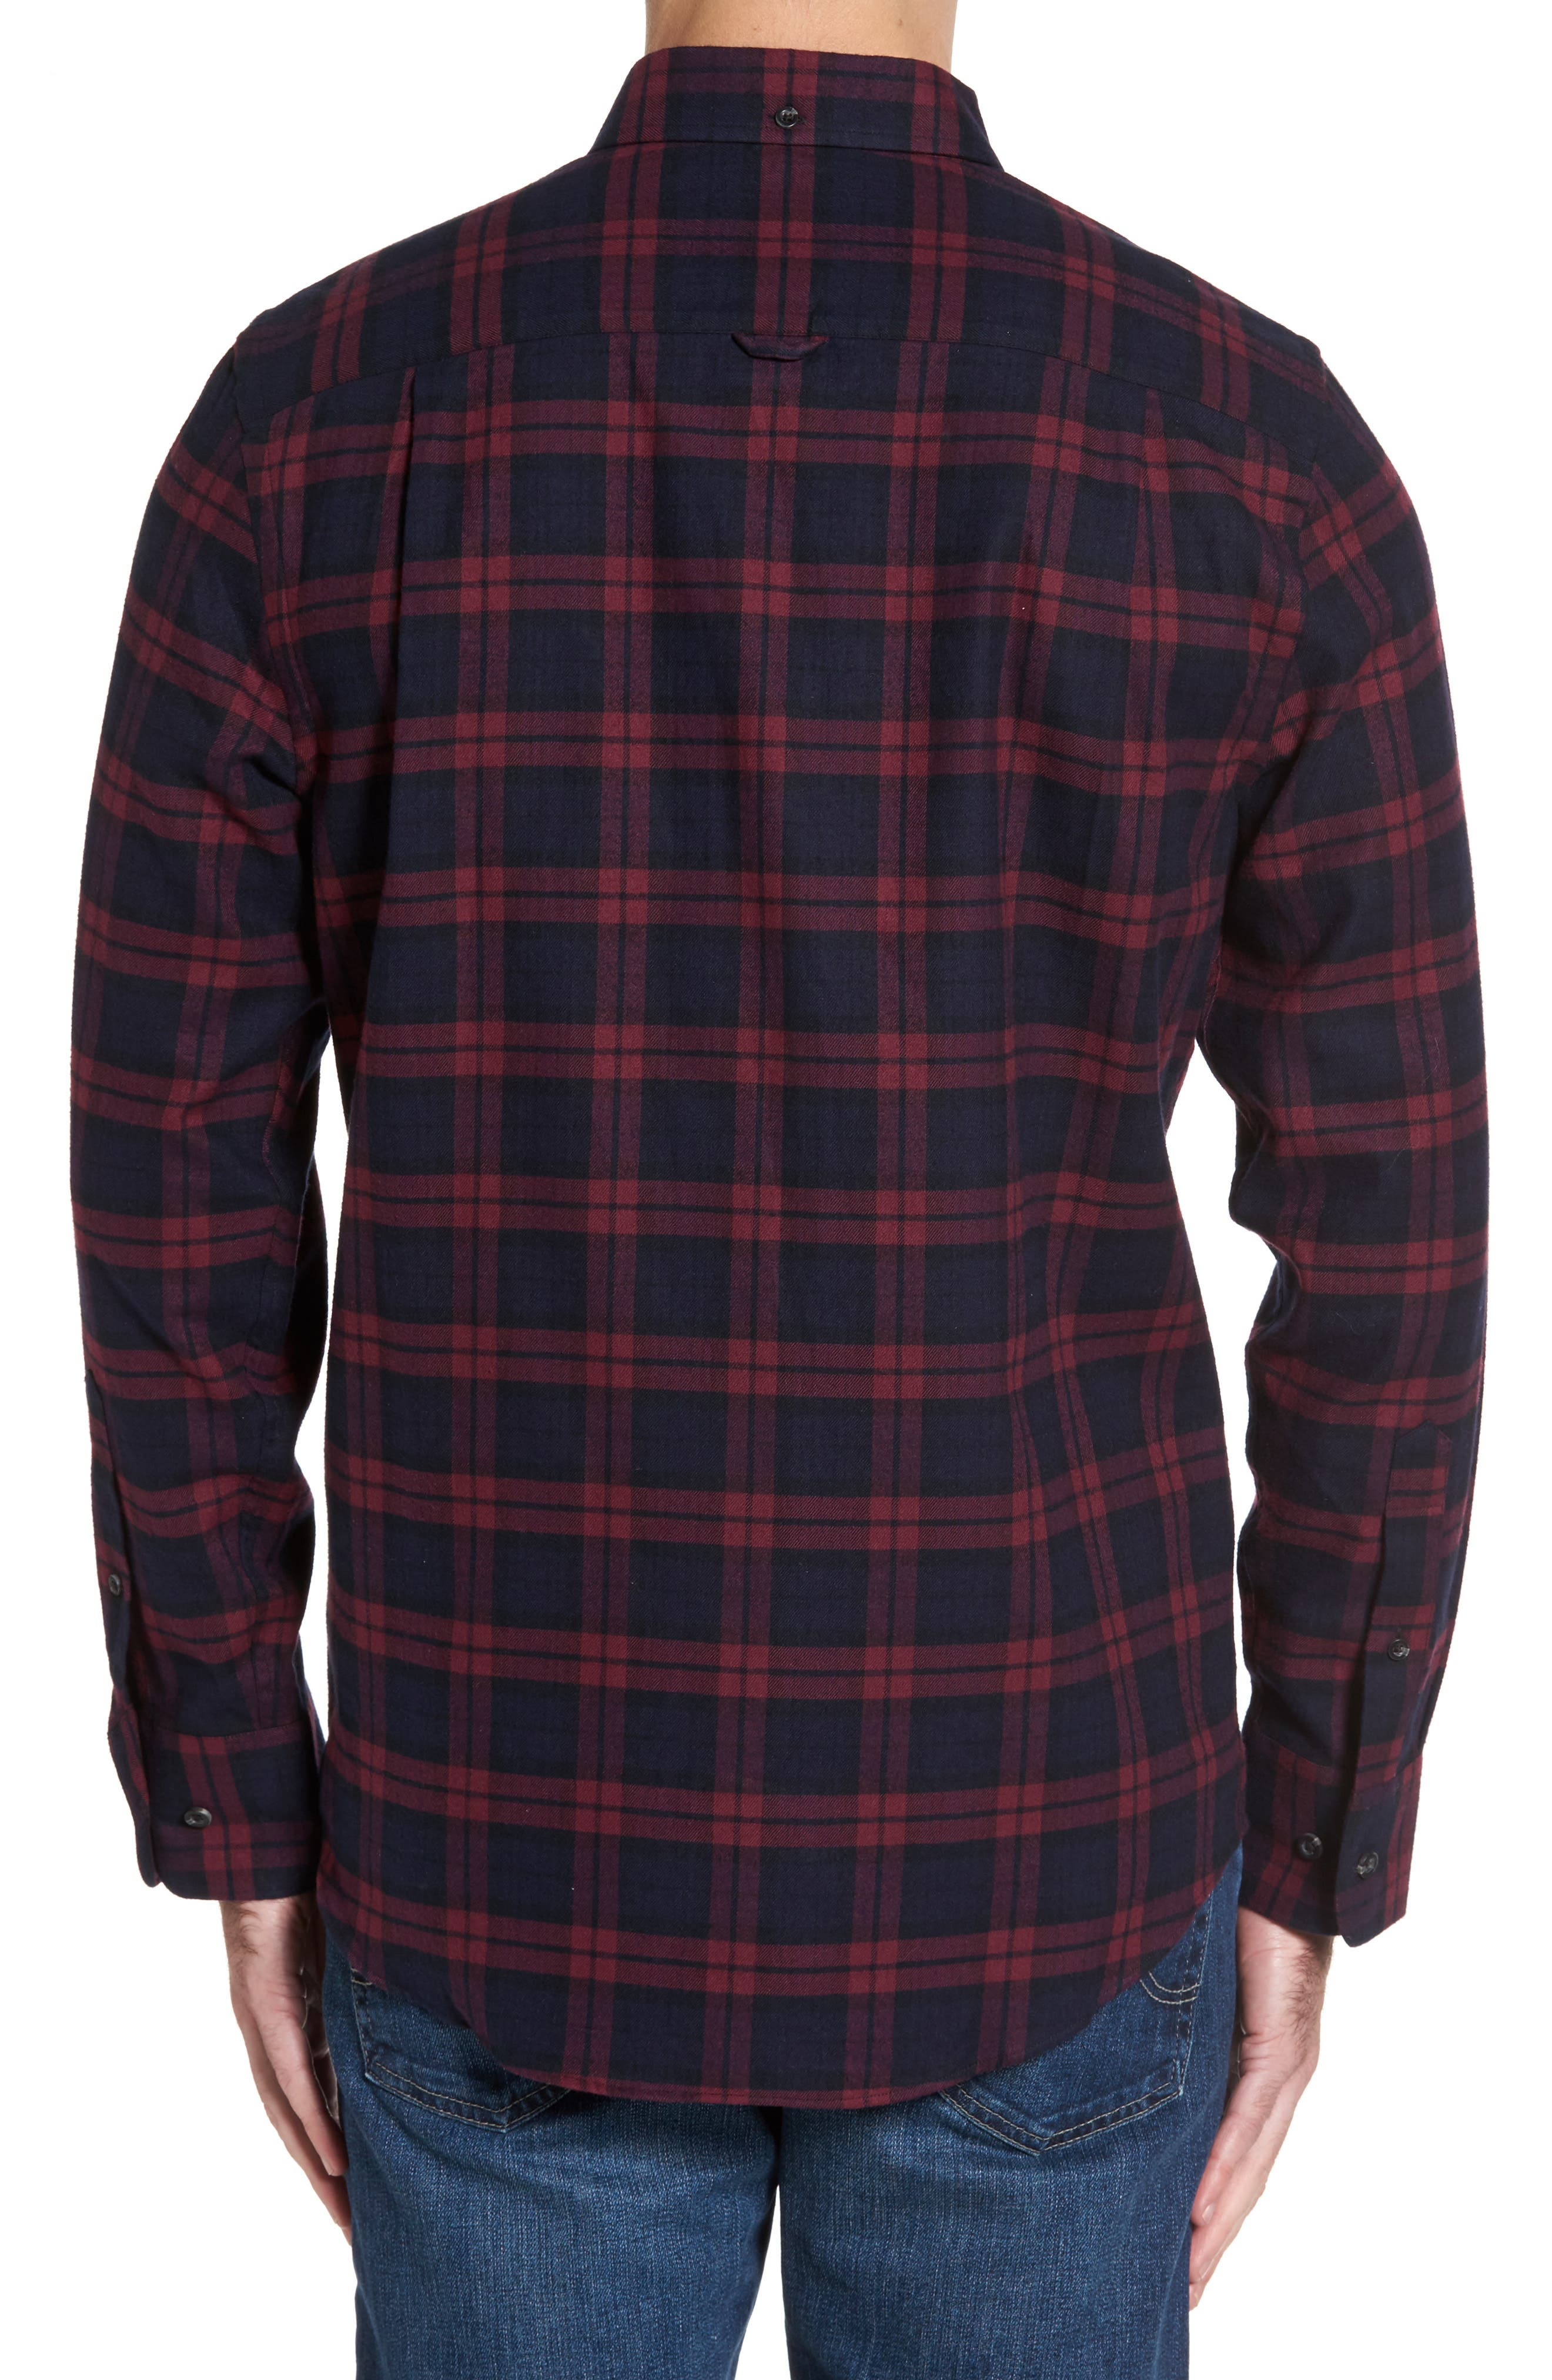 Regular Fit Plaid Sport Shirt,                             Alternate thumbnail 2, color,                             Red Chili Plaid Flannel